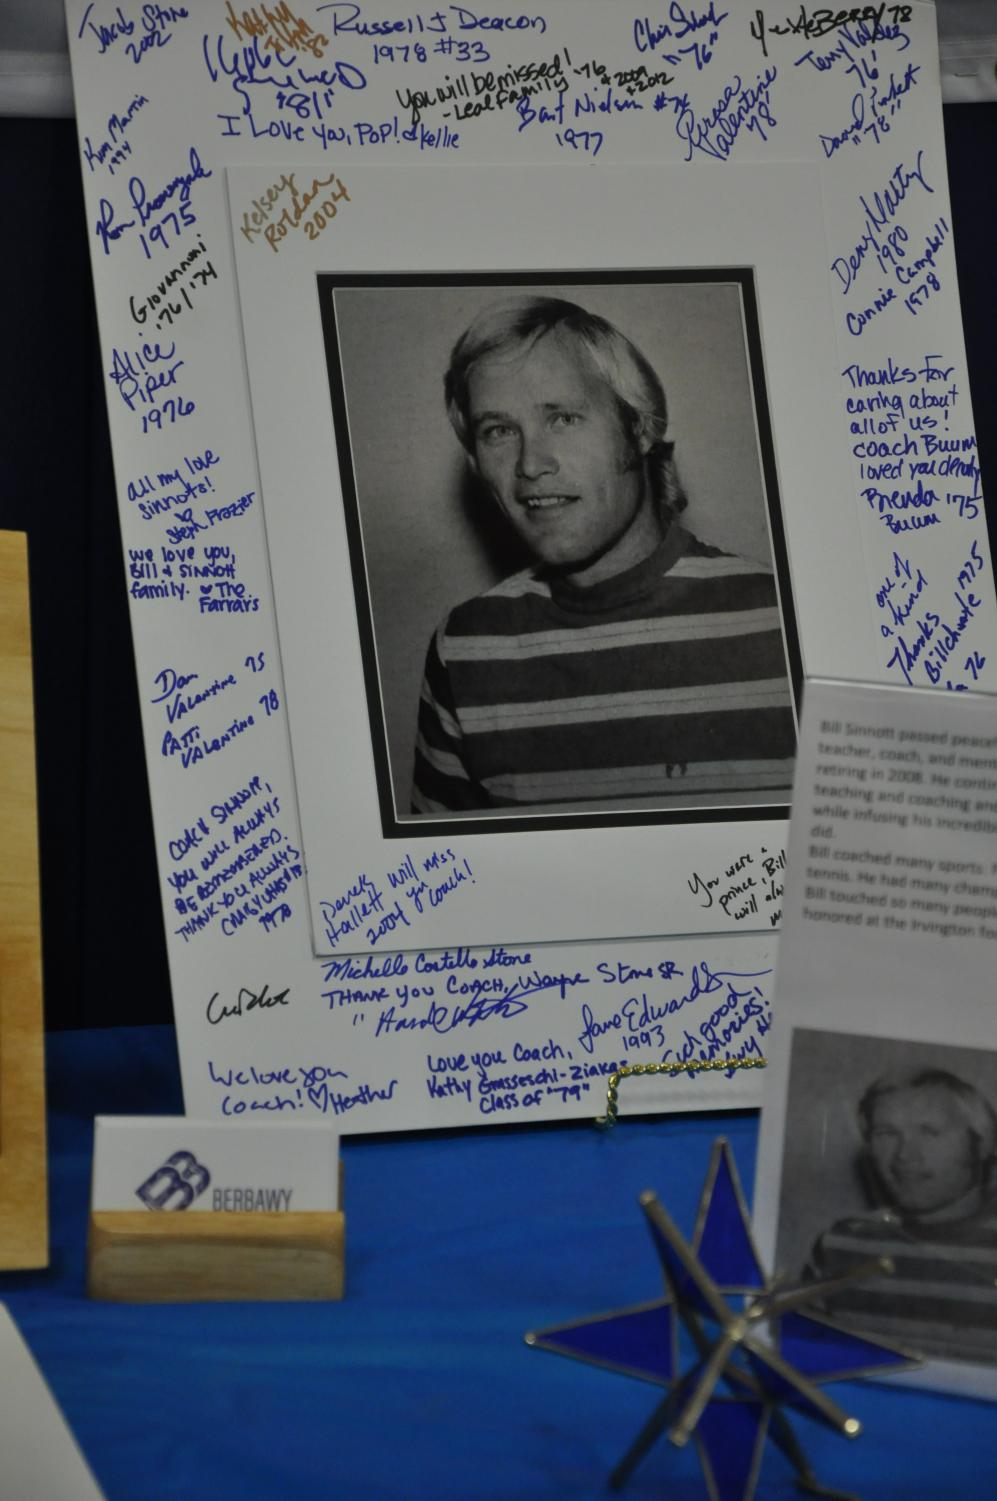 Significant mementos, capturing the life of Coach Sinnott at Irvington, were set on display.